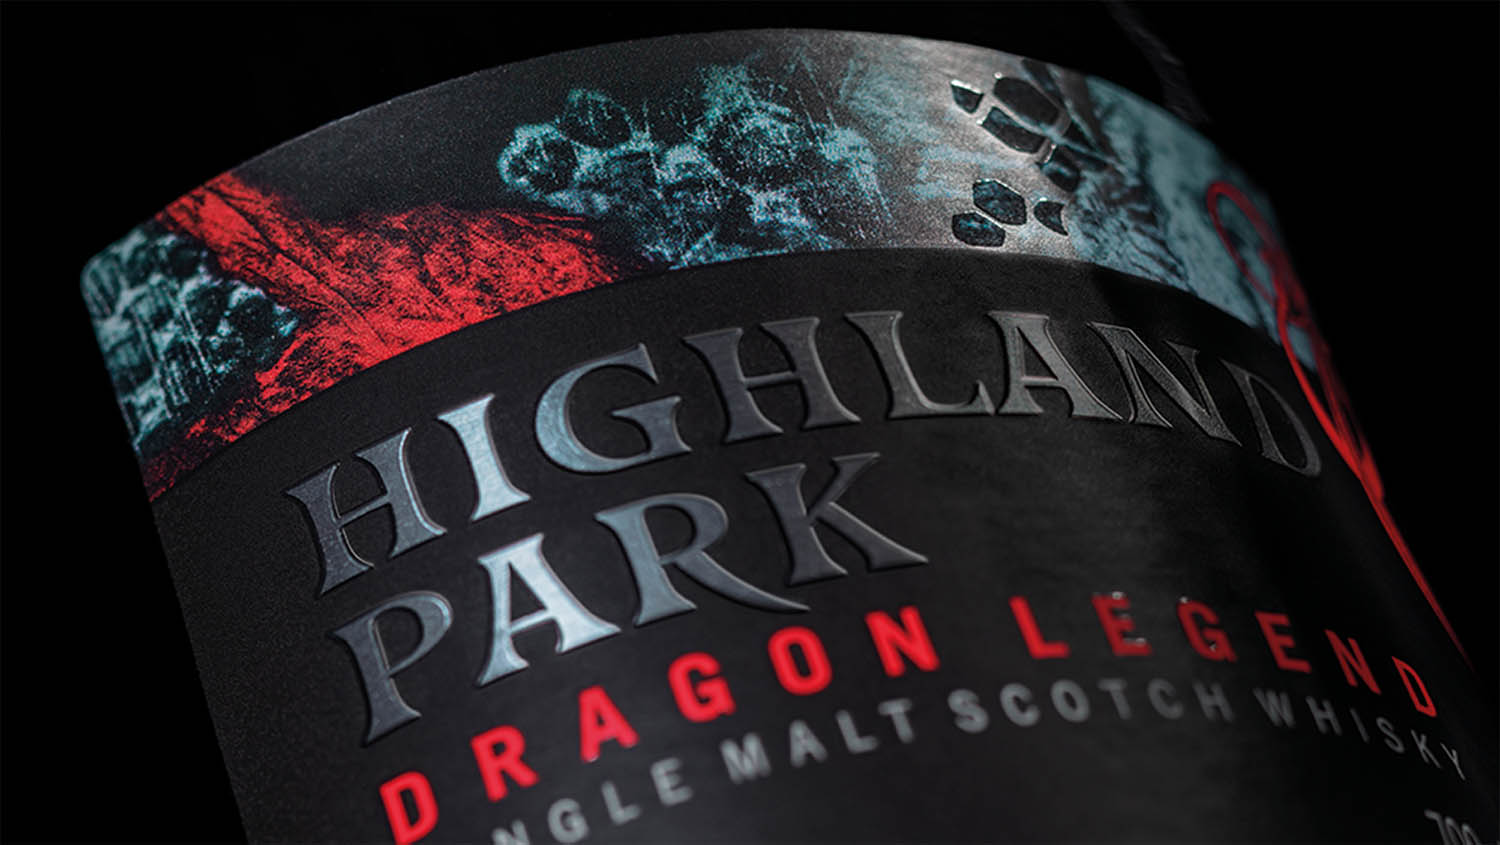 Mountain_Agency_Glasgow_Highland Park_Dragon Legend_007.jpg